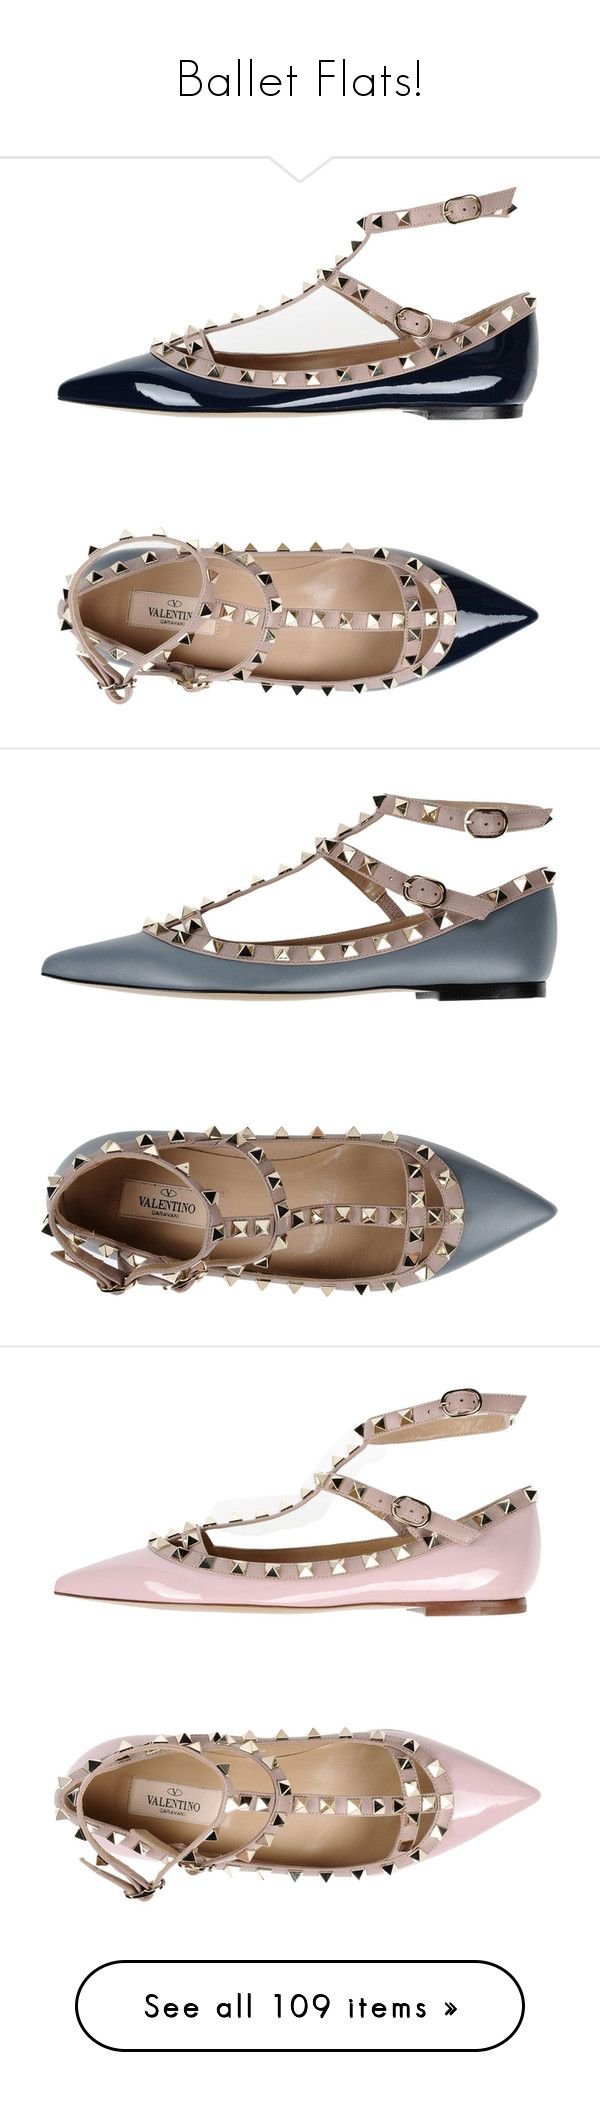 """Ballet Flats!"" by miss-image ❤ liked on Polyvore featuring shoes, flats, dark blue, valentino shoes, studded flats, ankle strap flats, studded ballet flats, ballerina flat shoes, grey and valentino flats"